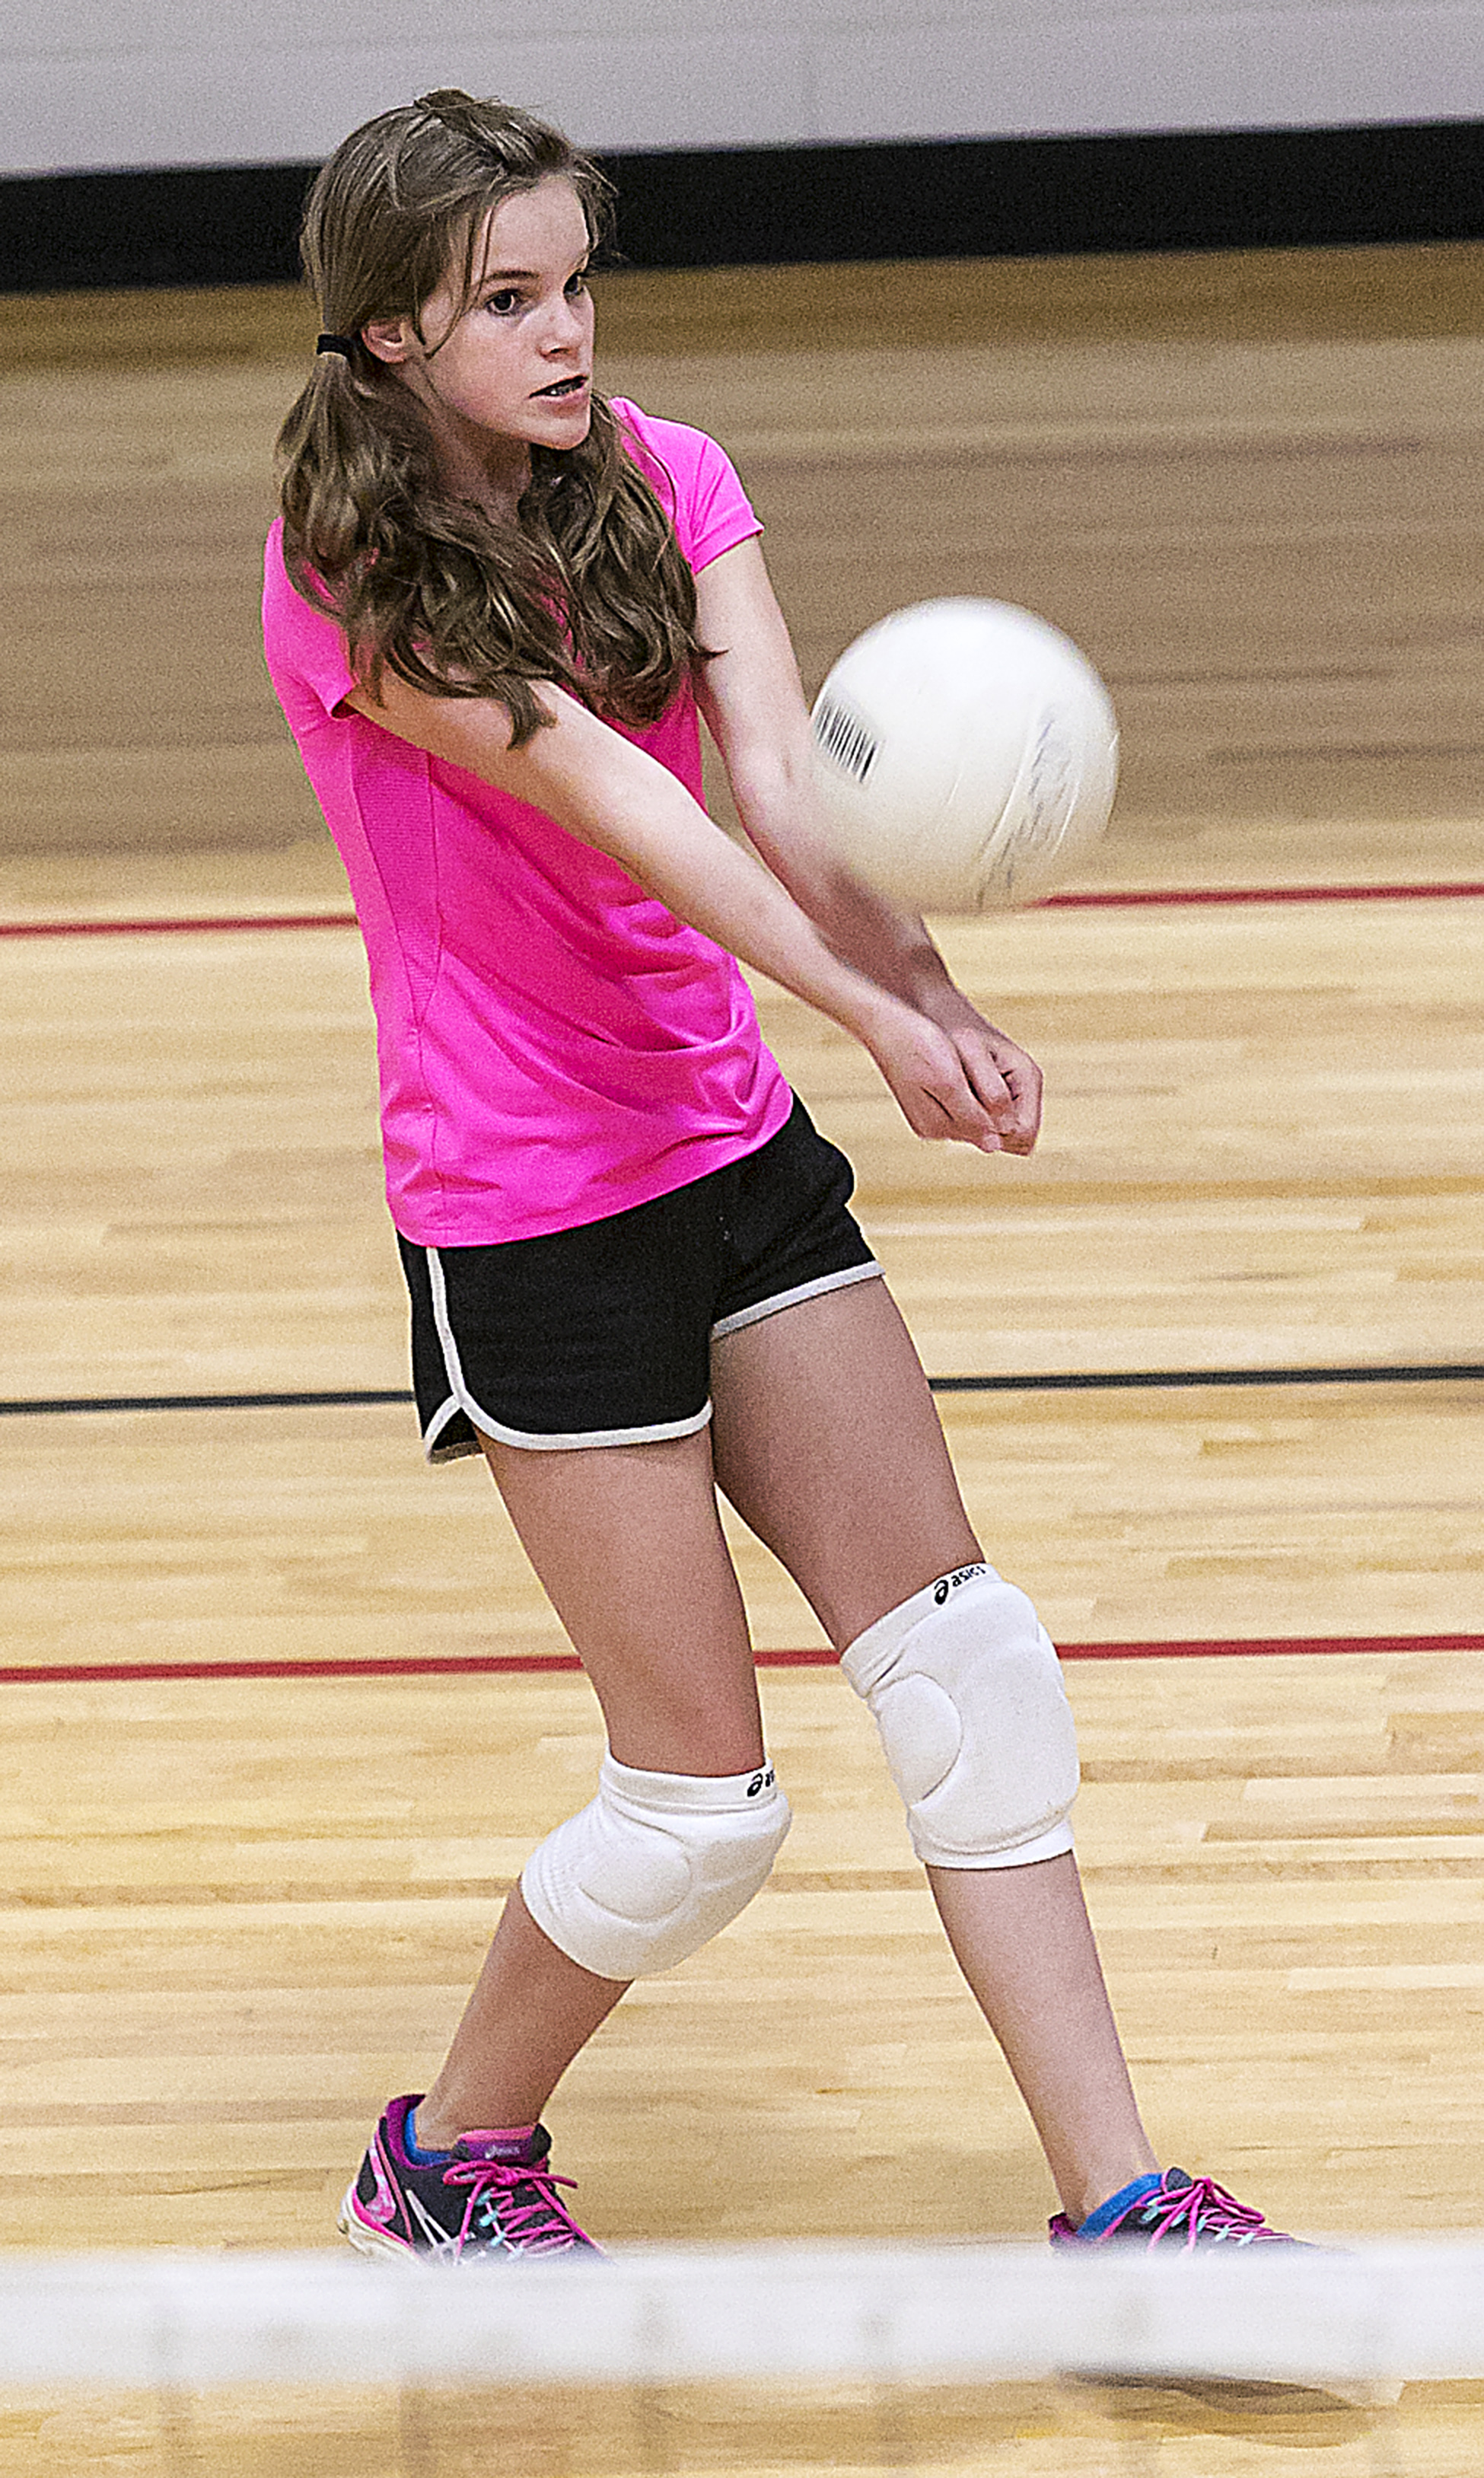 0813-youth volleyball-1751.jpg